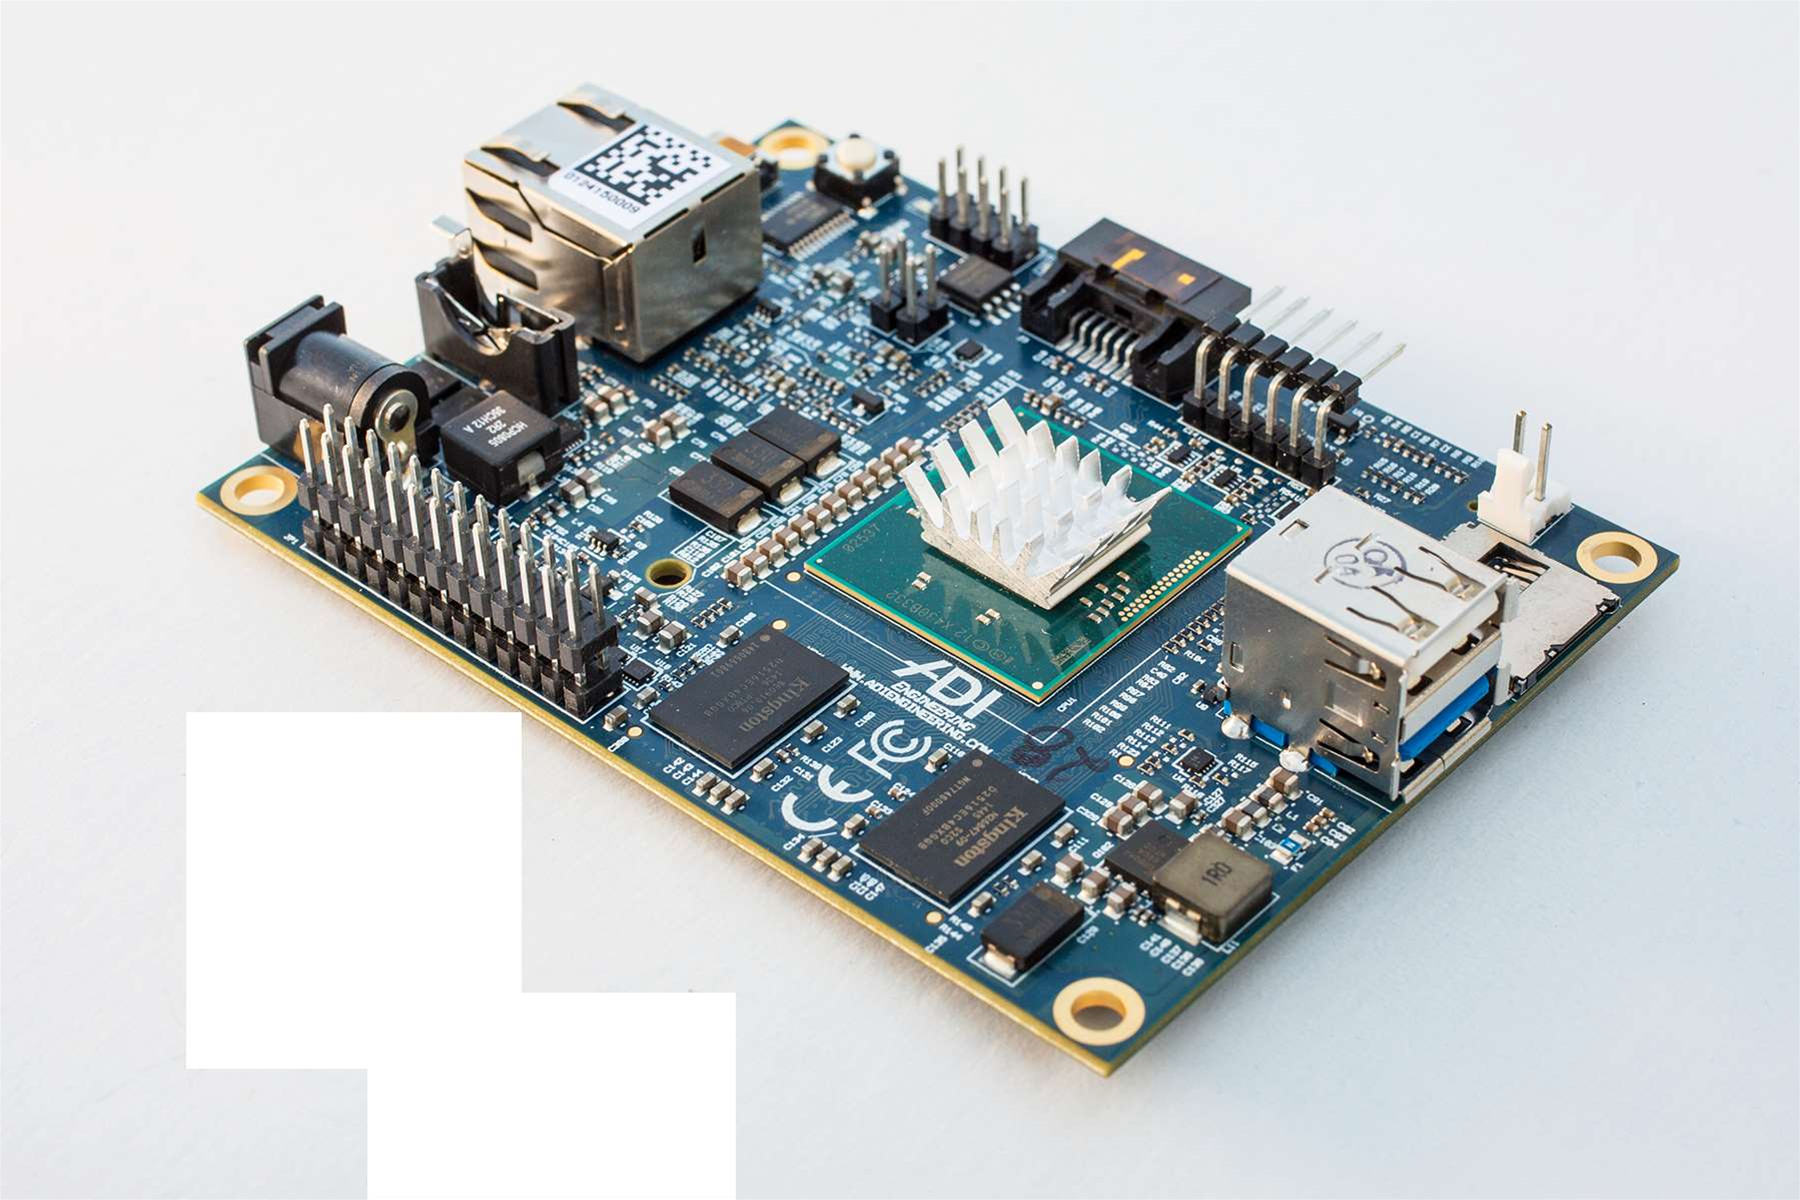 Intel expands IoT product offerings